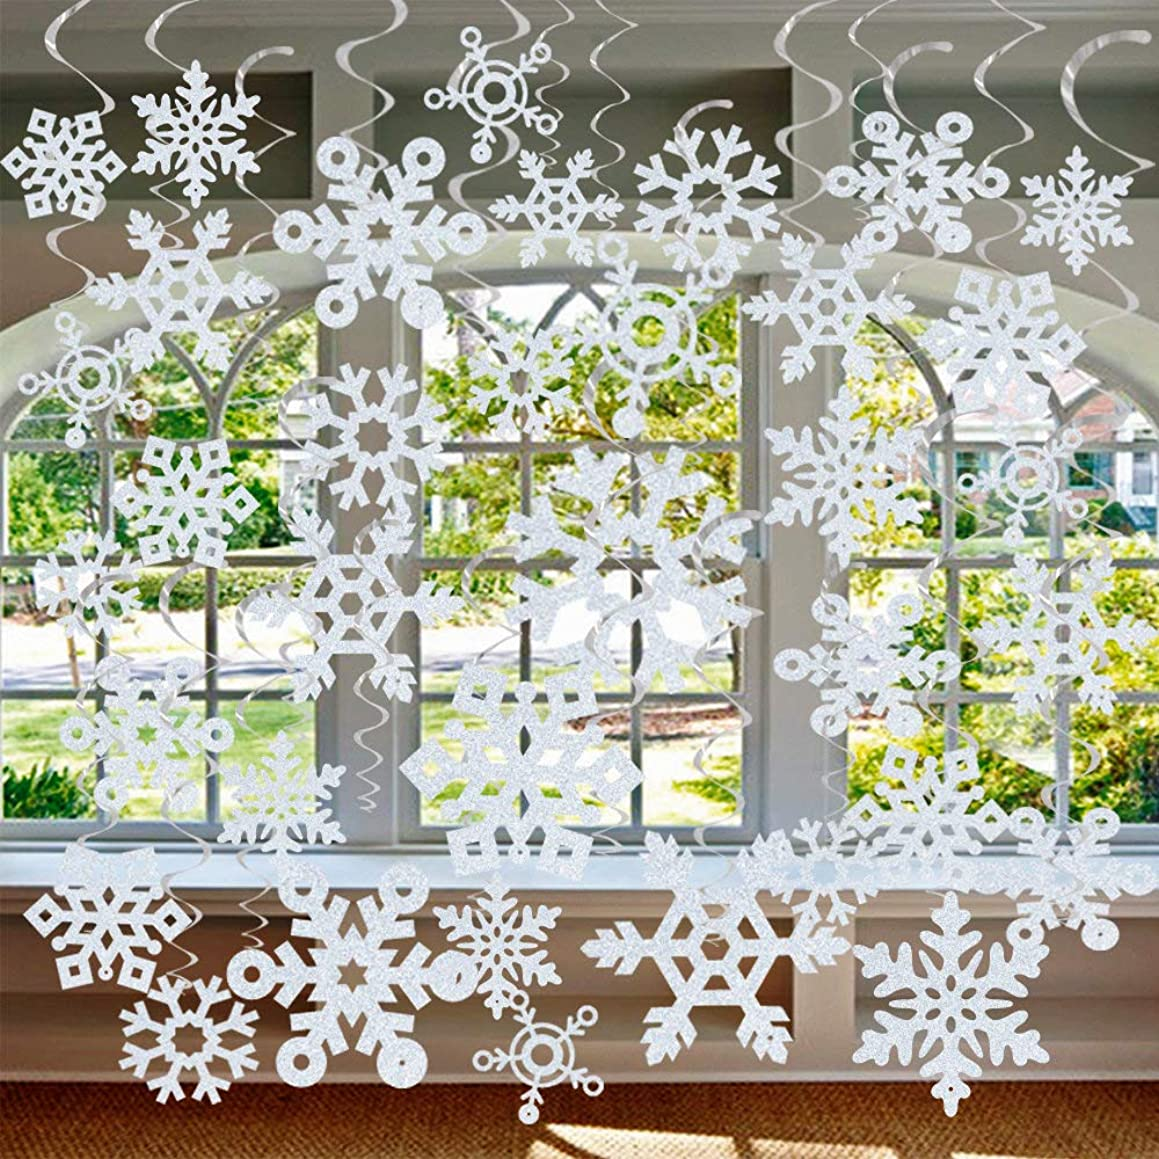 GOER 36 Pcs Snowflake Hanging Swirls for New Year Christmas Winter Party Decorations